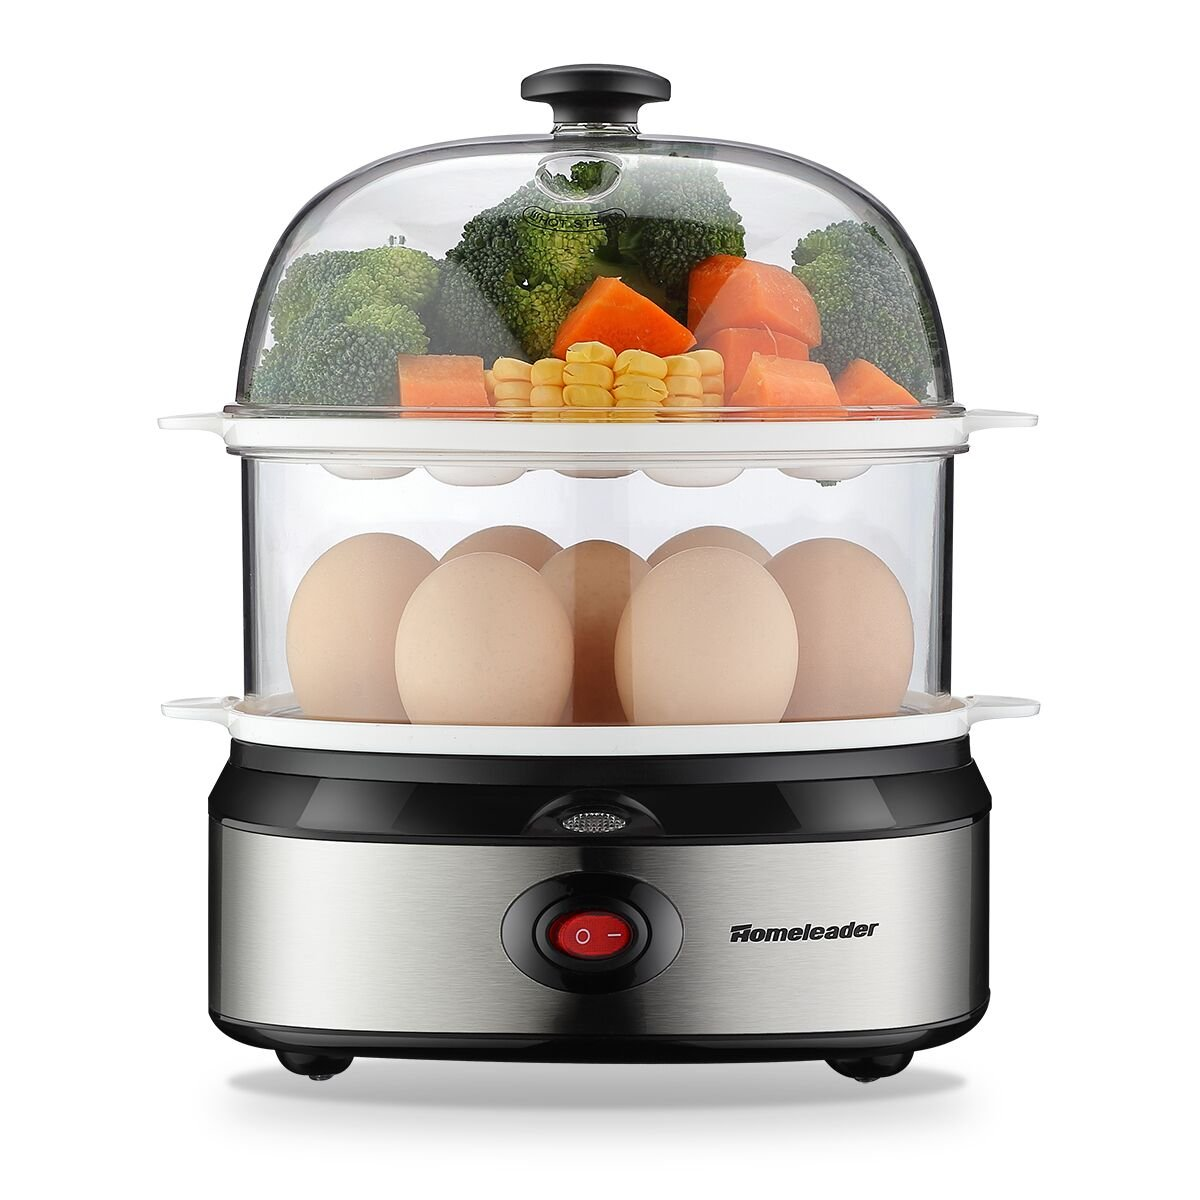 Homeleader Egg Cooker, 360W Egg Maker, Electric Egg Boiler with Steamer Bowl and Measuring Cup, 14 Eggs Capacity, Automatic Shut Off, K08-009 by Homeleader